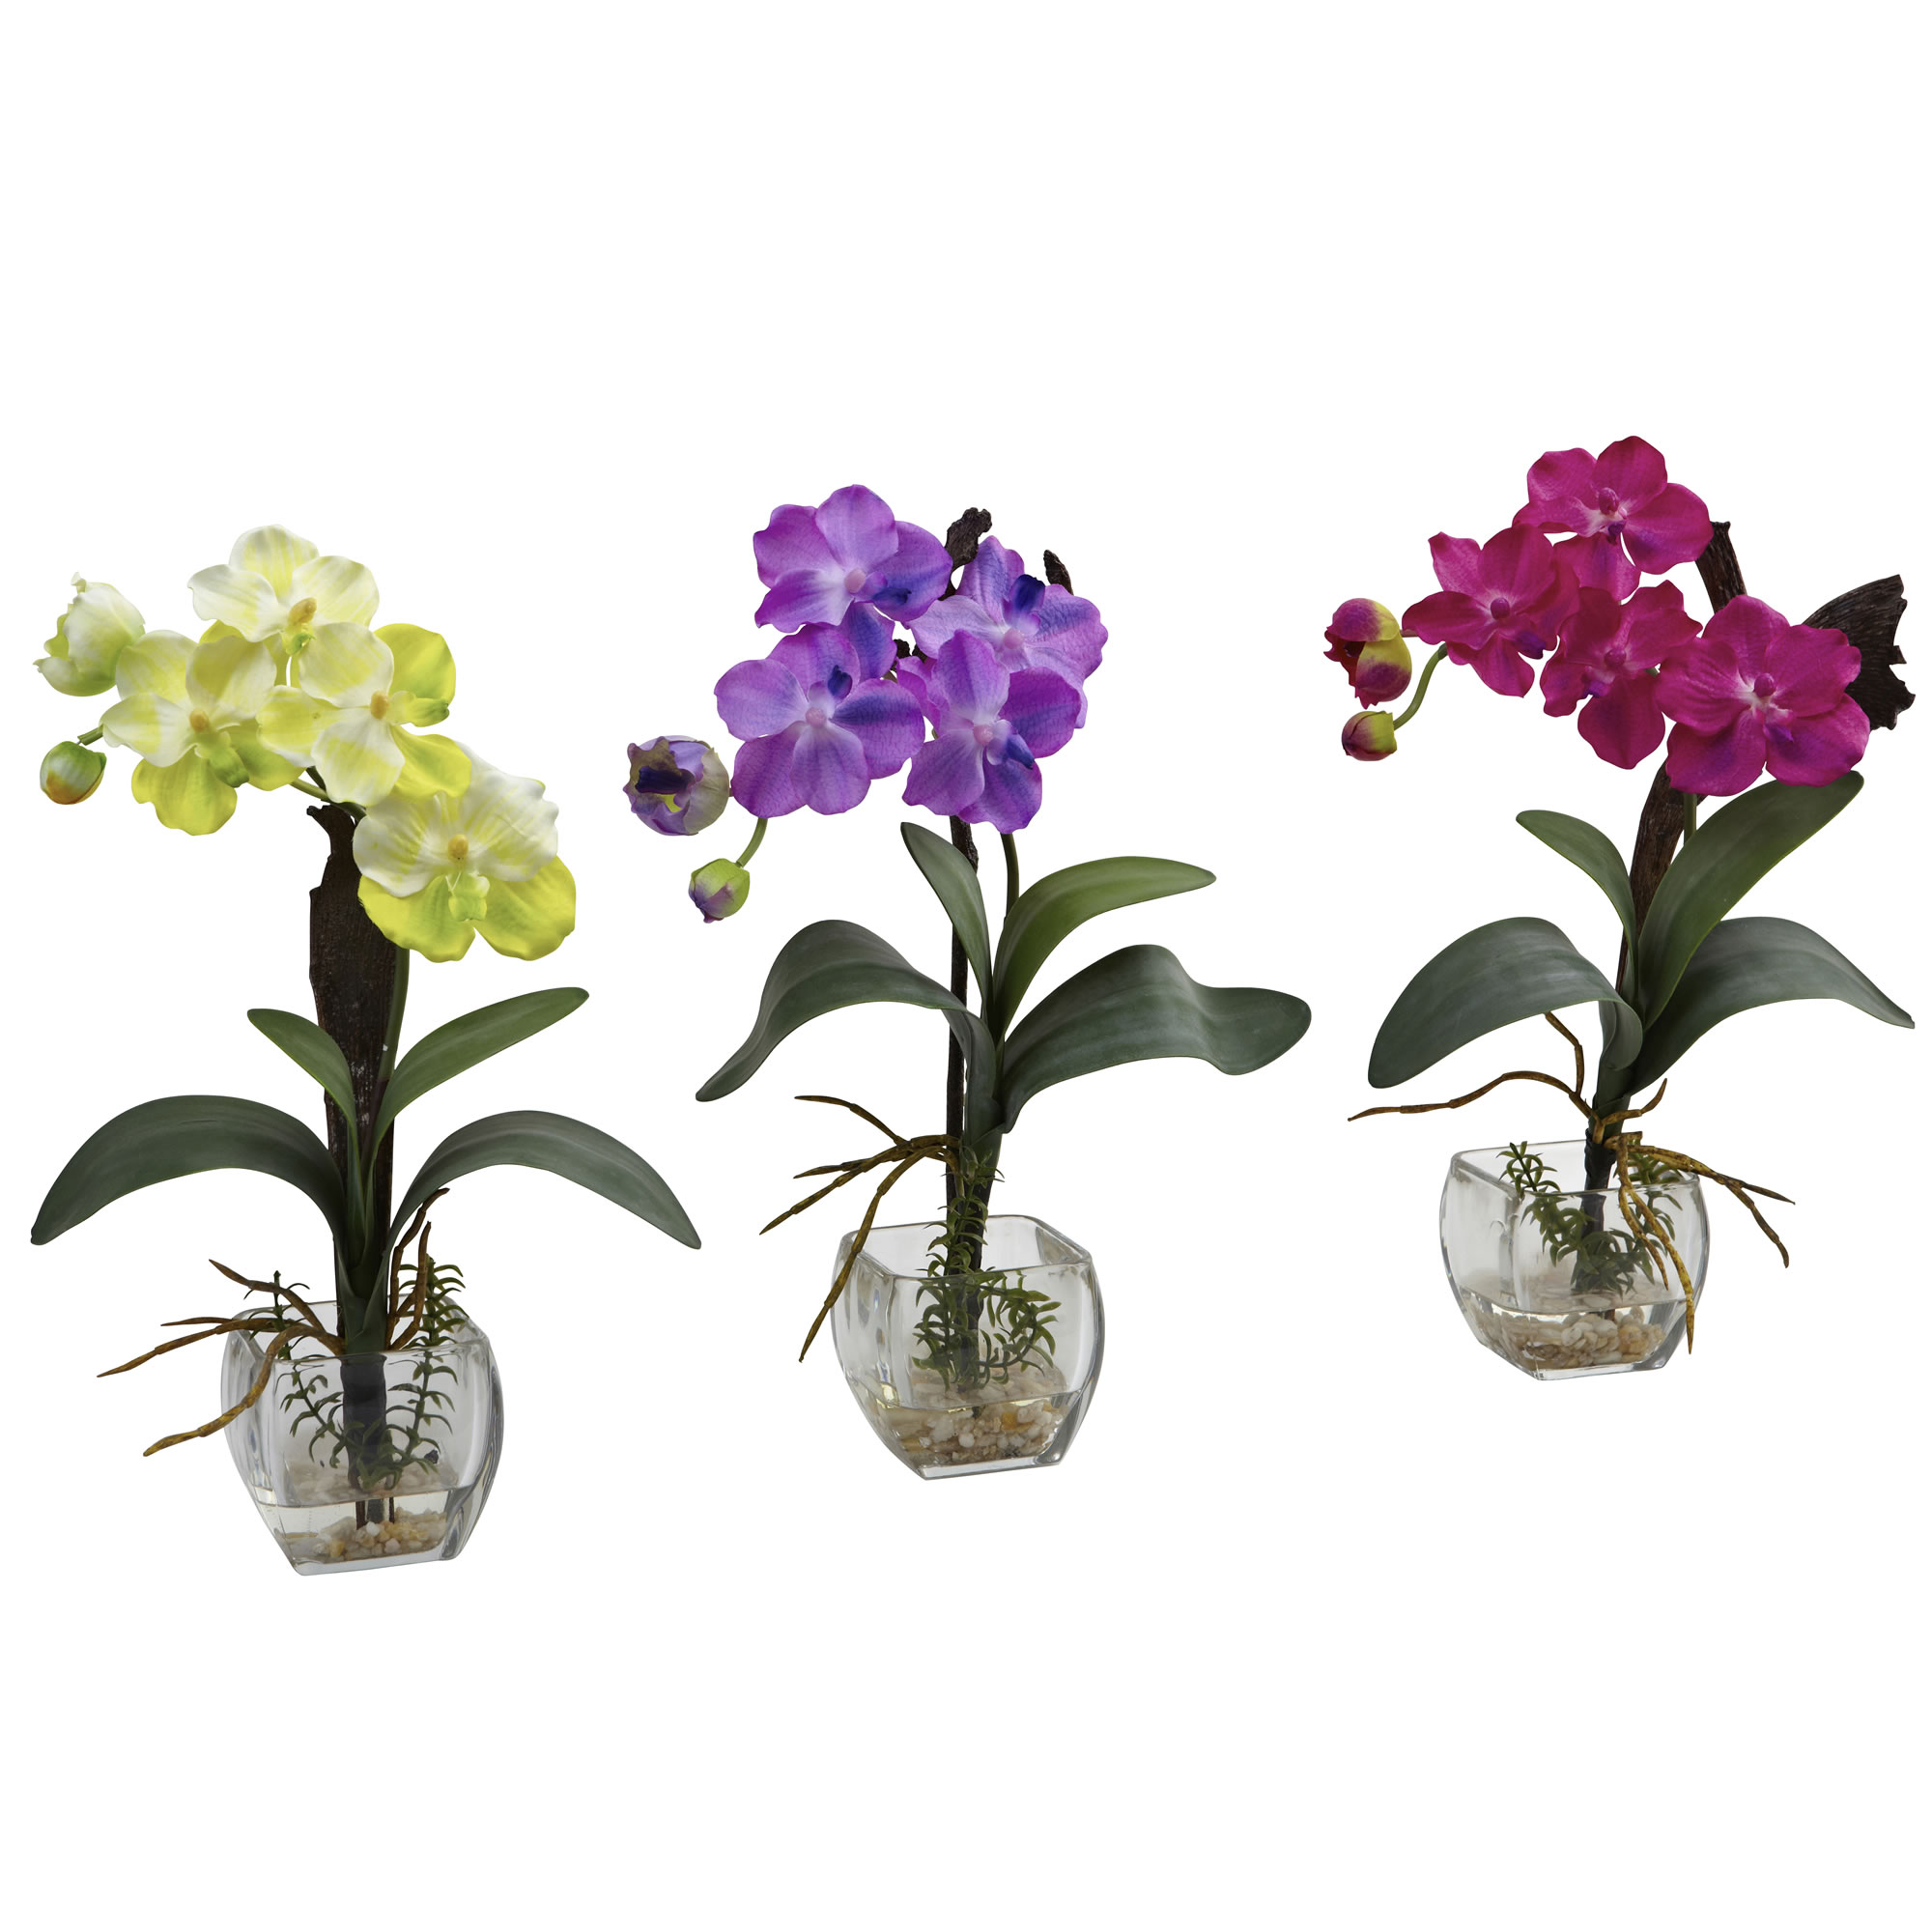 David shaw silverware na ltd mini vanda orchid arrangement set of